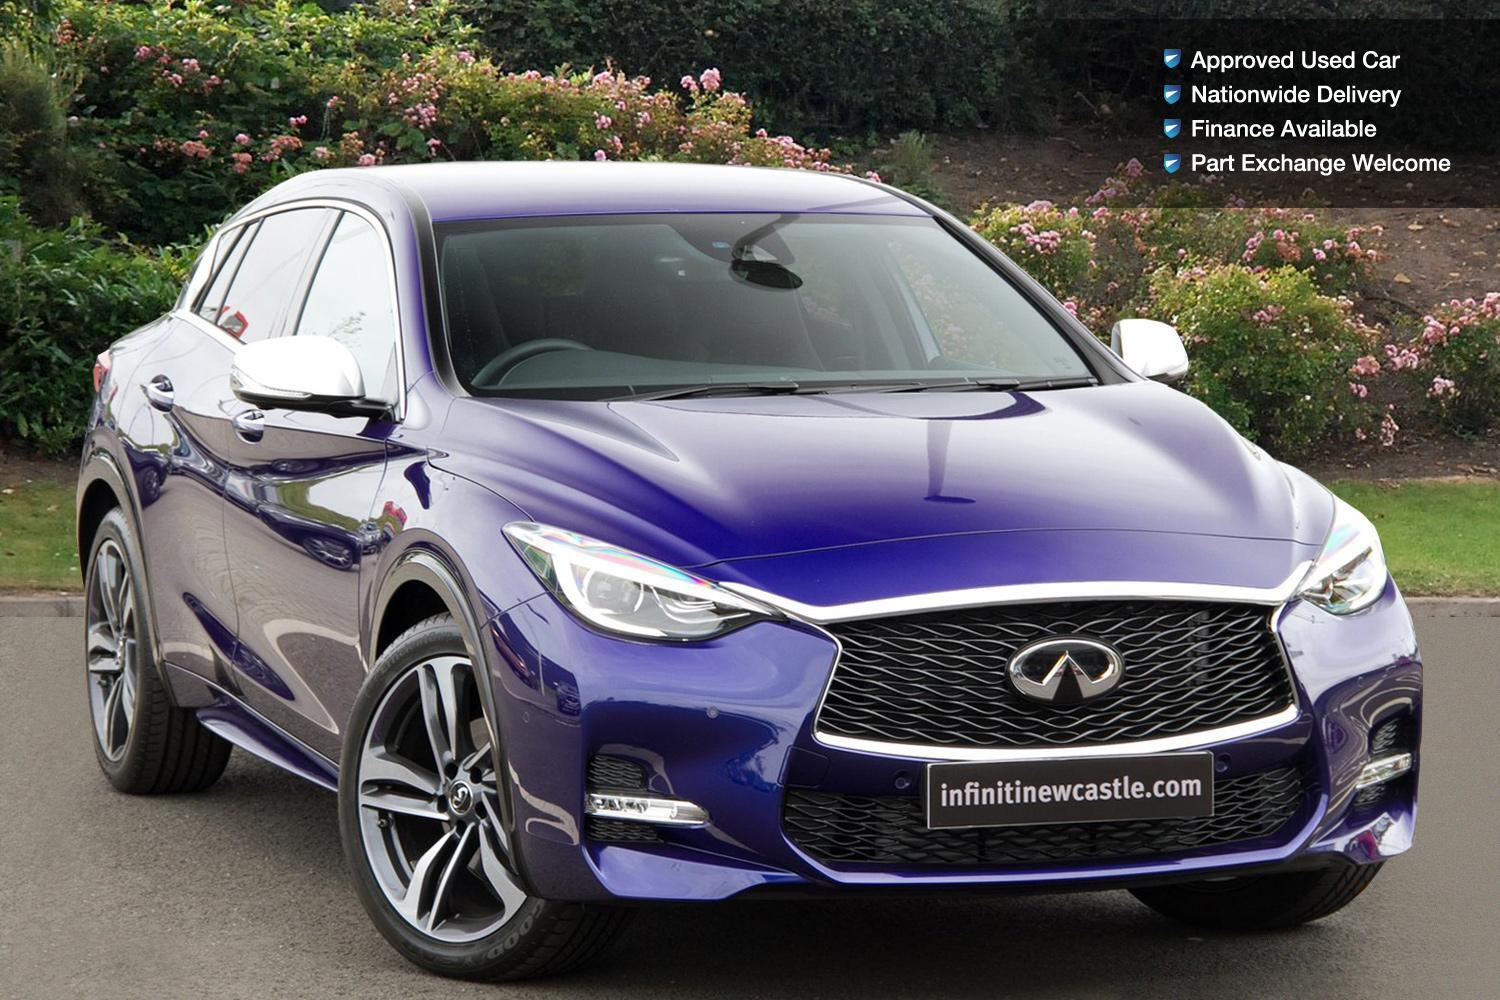 used infiniti q30 1 5d sport 5dr in touch nav diesel hatchback for sale newcastle infiniti. Black Bedroom Furniture Sets. Home Design Ideas